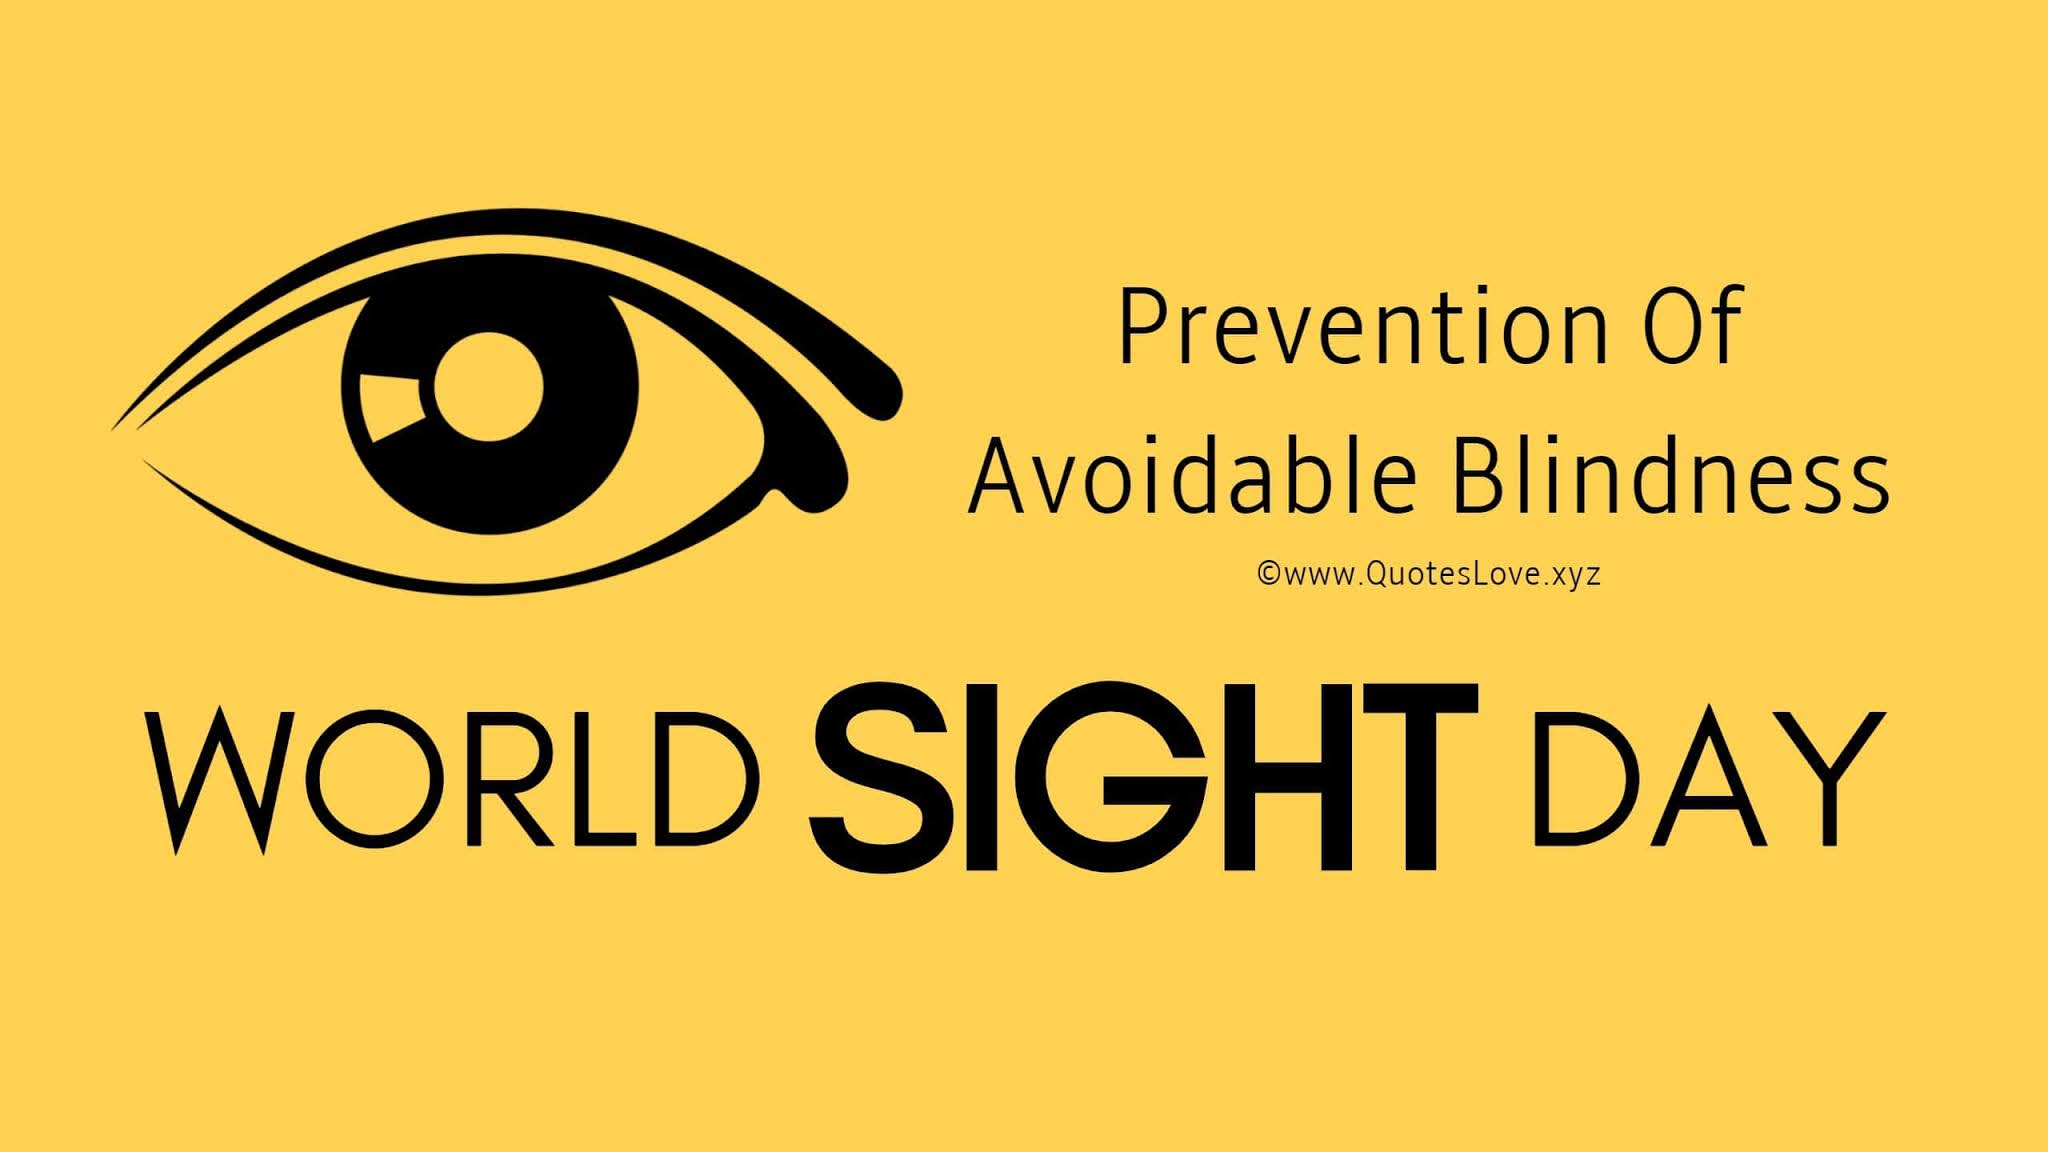 World Sight Day Quotes, Wishes, Images, Poster, Pictures